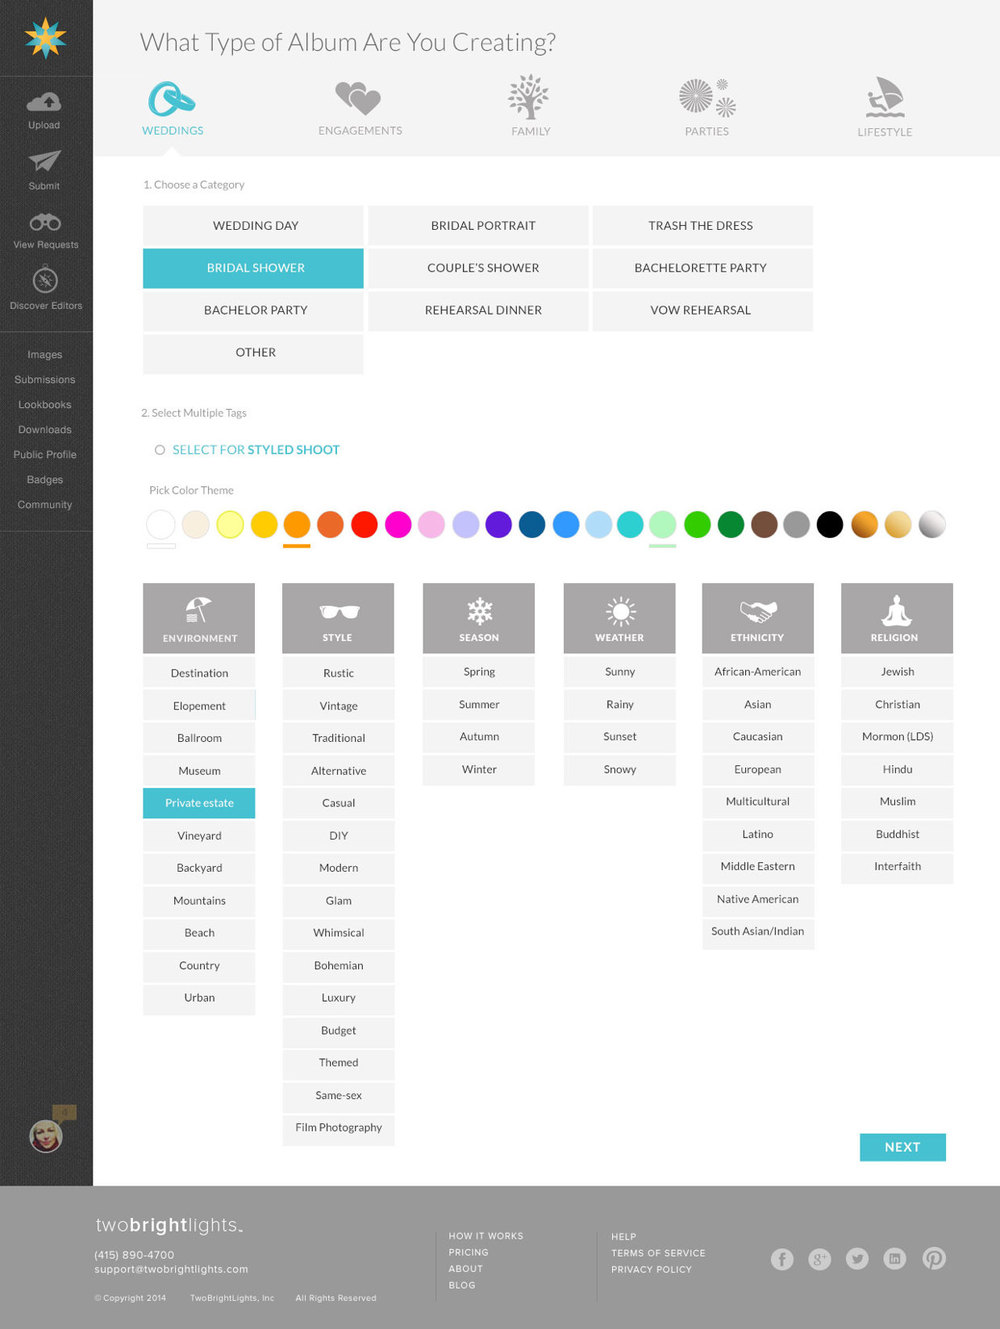 Product Design: Create Album Section - Categorization and Tagging.